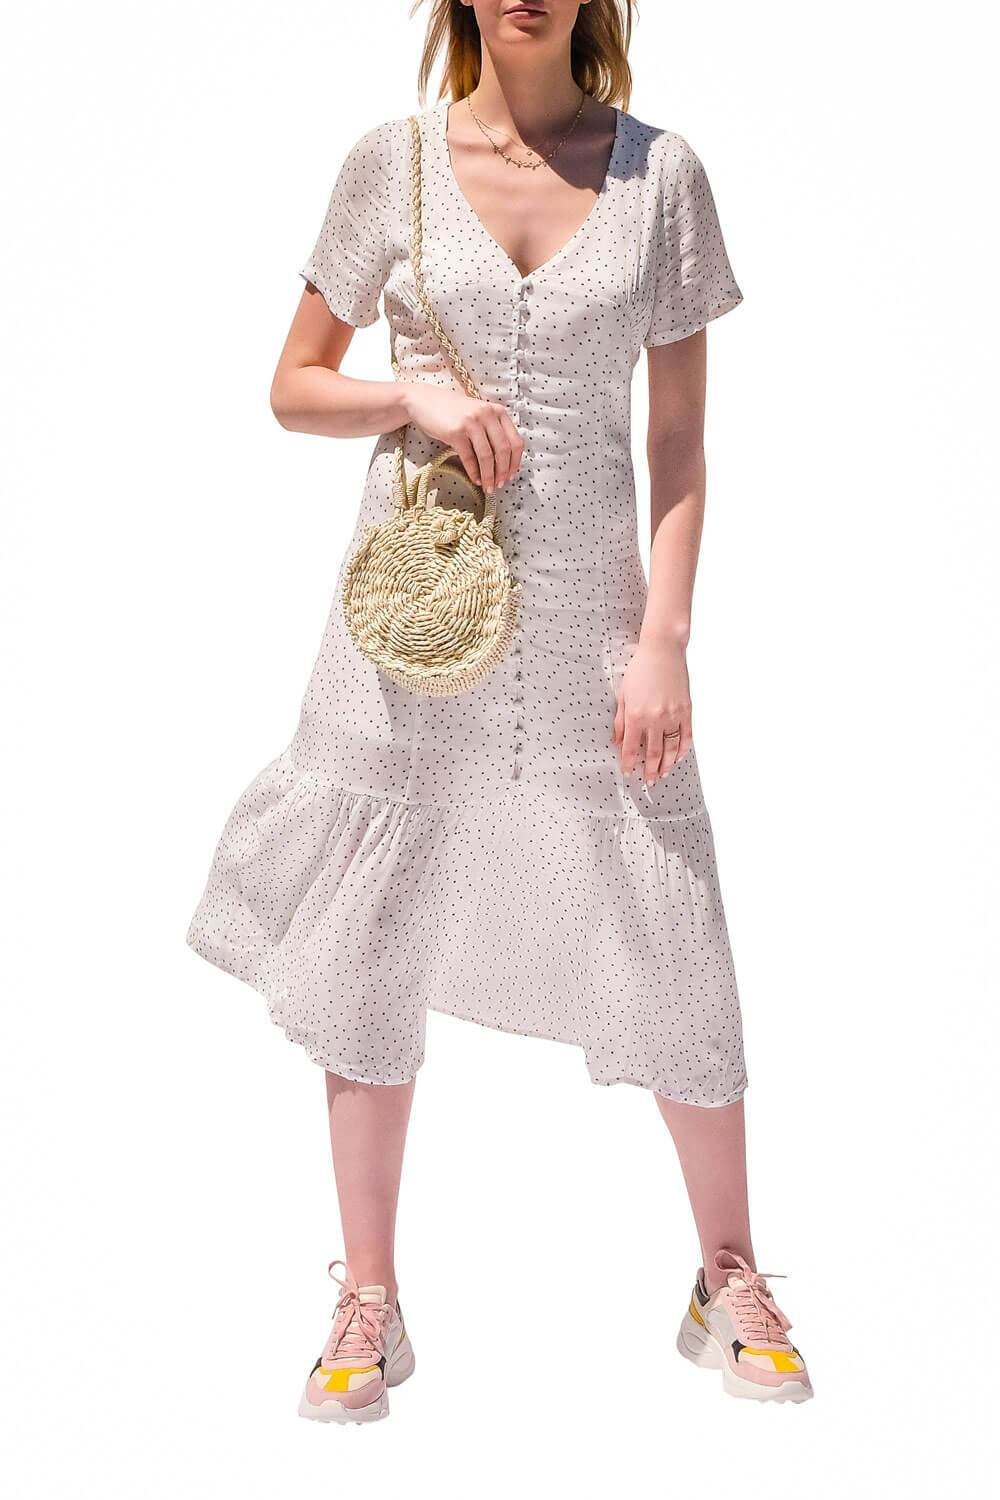 Willow Polka Dot Dress White - MILK MONEY